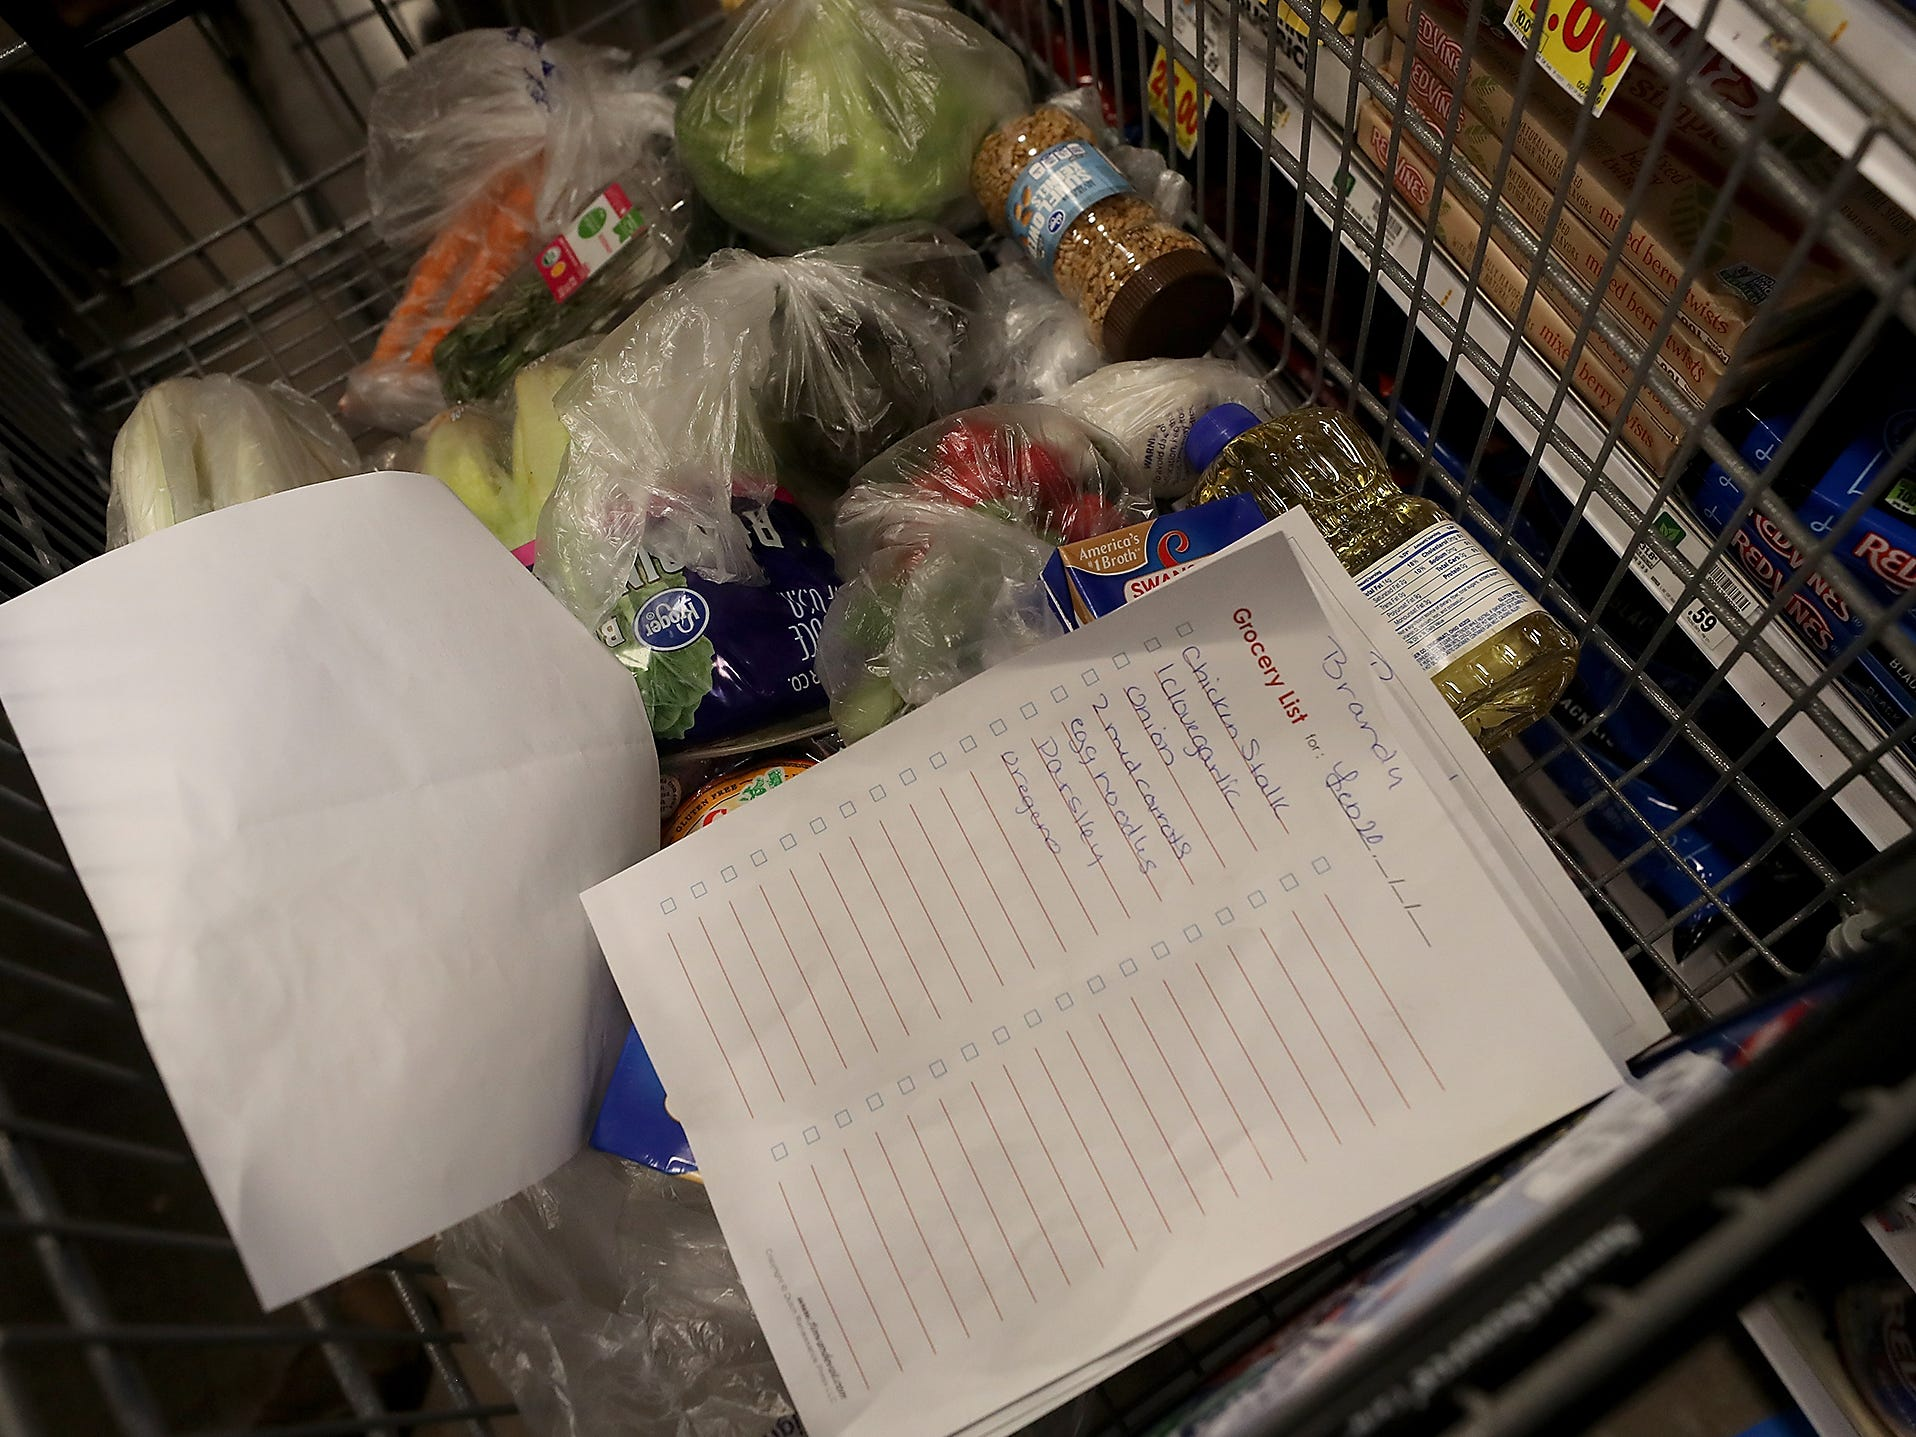 Brandy Mathews grocery list sit sin her cart at Fred Meyer in Bremerton on Wednesday, February 20, 2019.